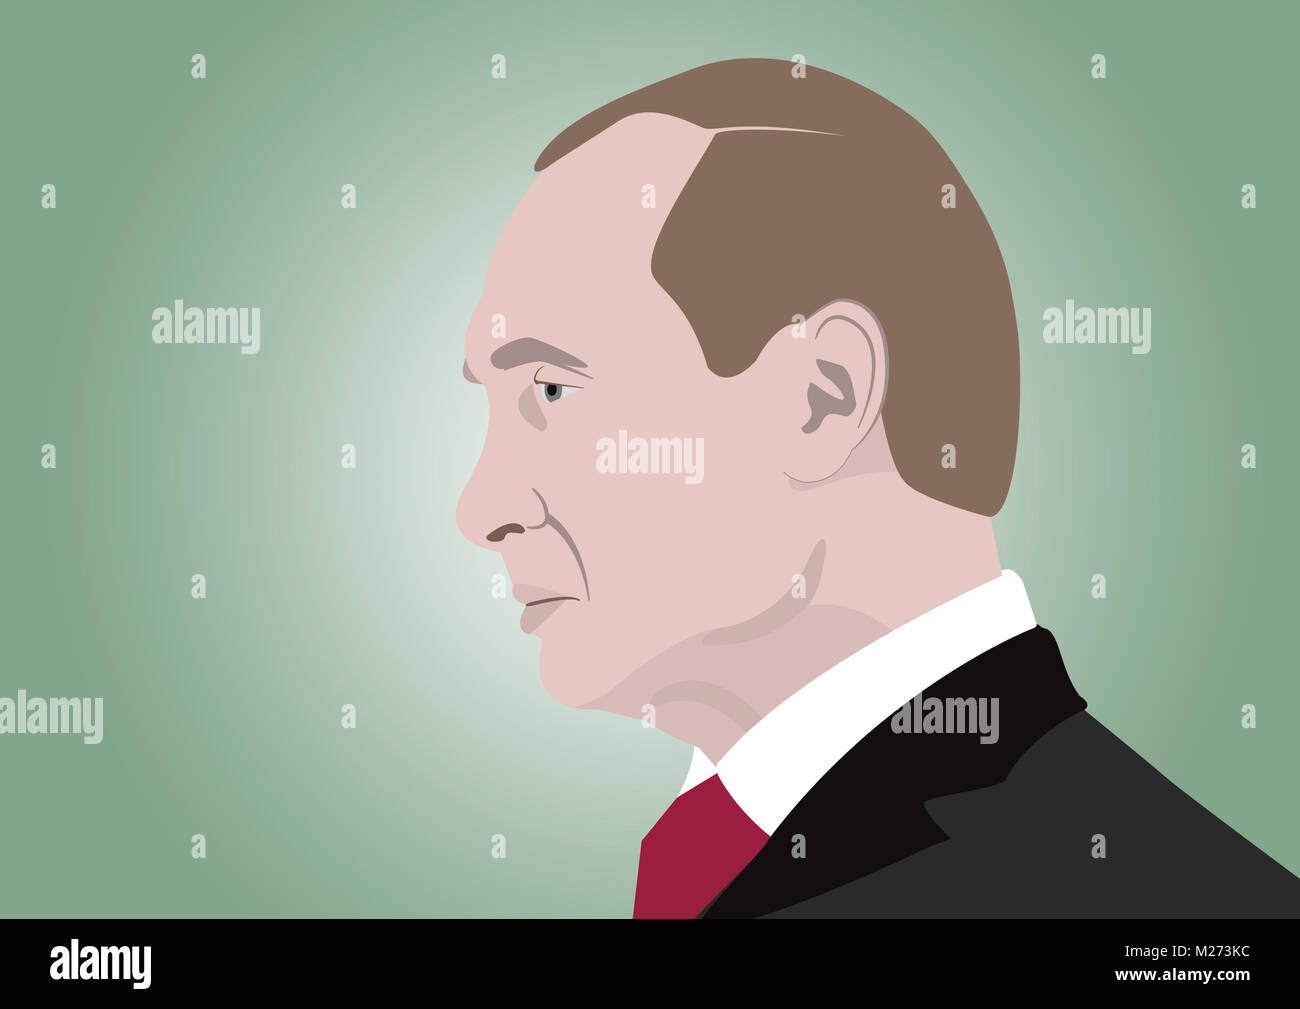 February 5, 2018: An illustration of a portrait of Vladimir Putin, the President of Russia - Stock Image